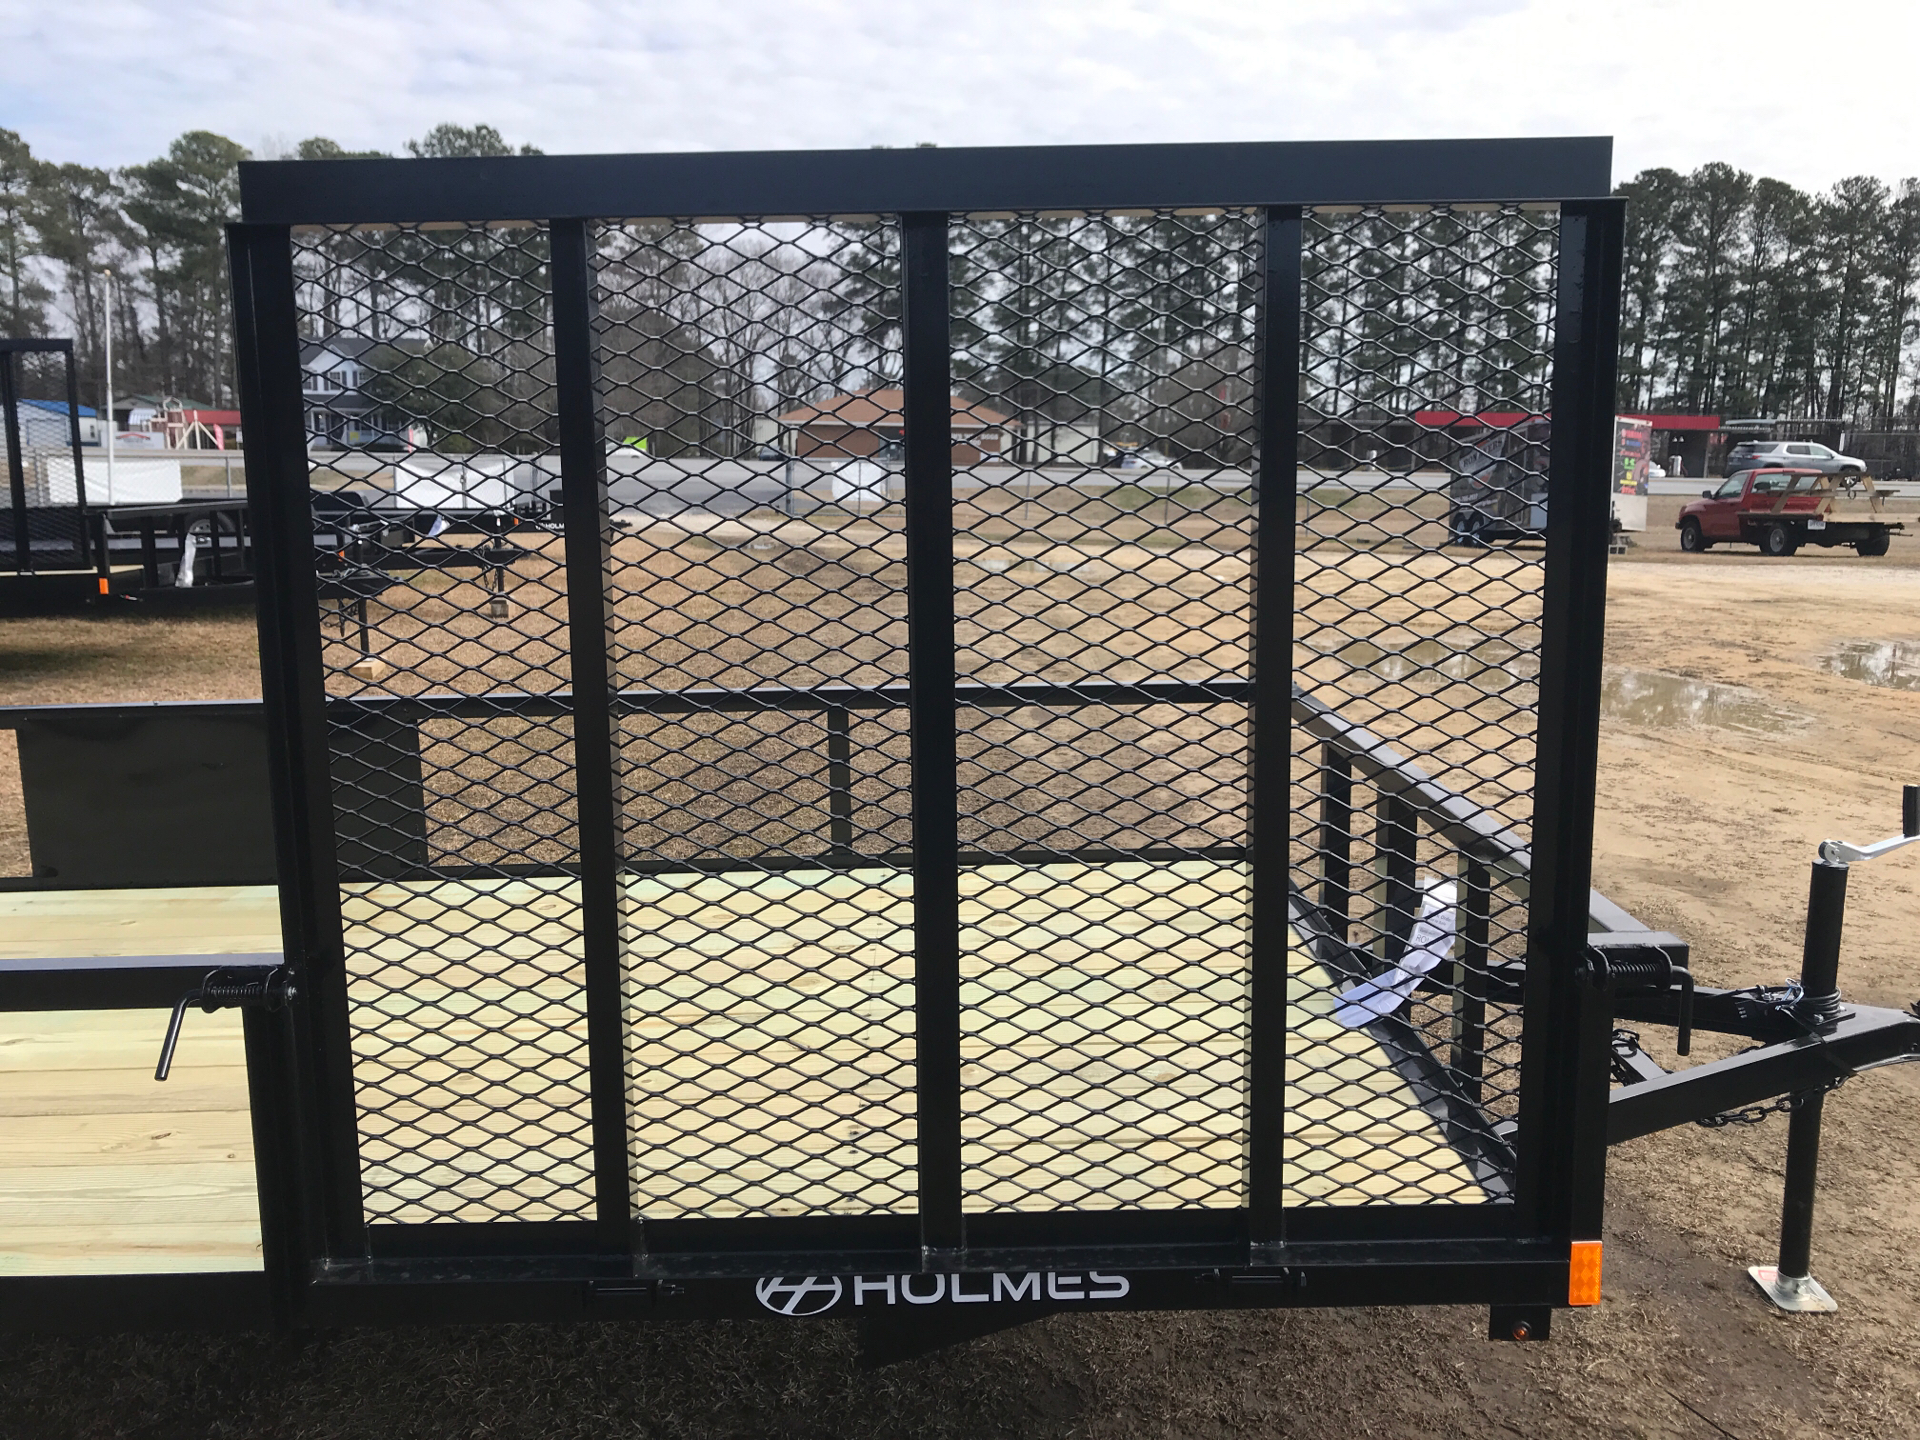 2021 Holmes 6.4 x 14 3.5k axle w/Side Gate in Greenville, North Carolina - Photo 3